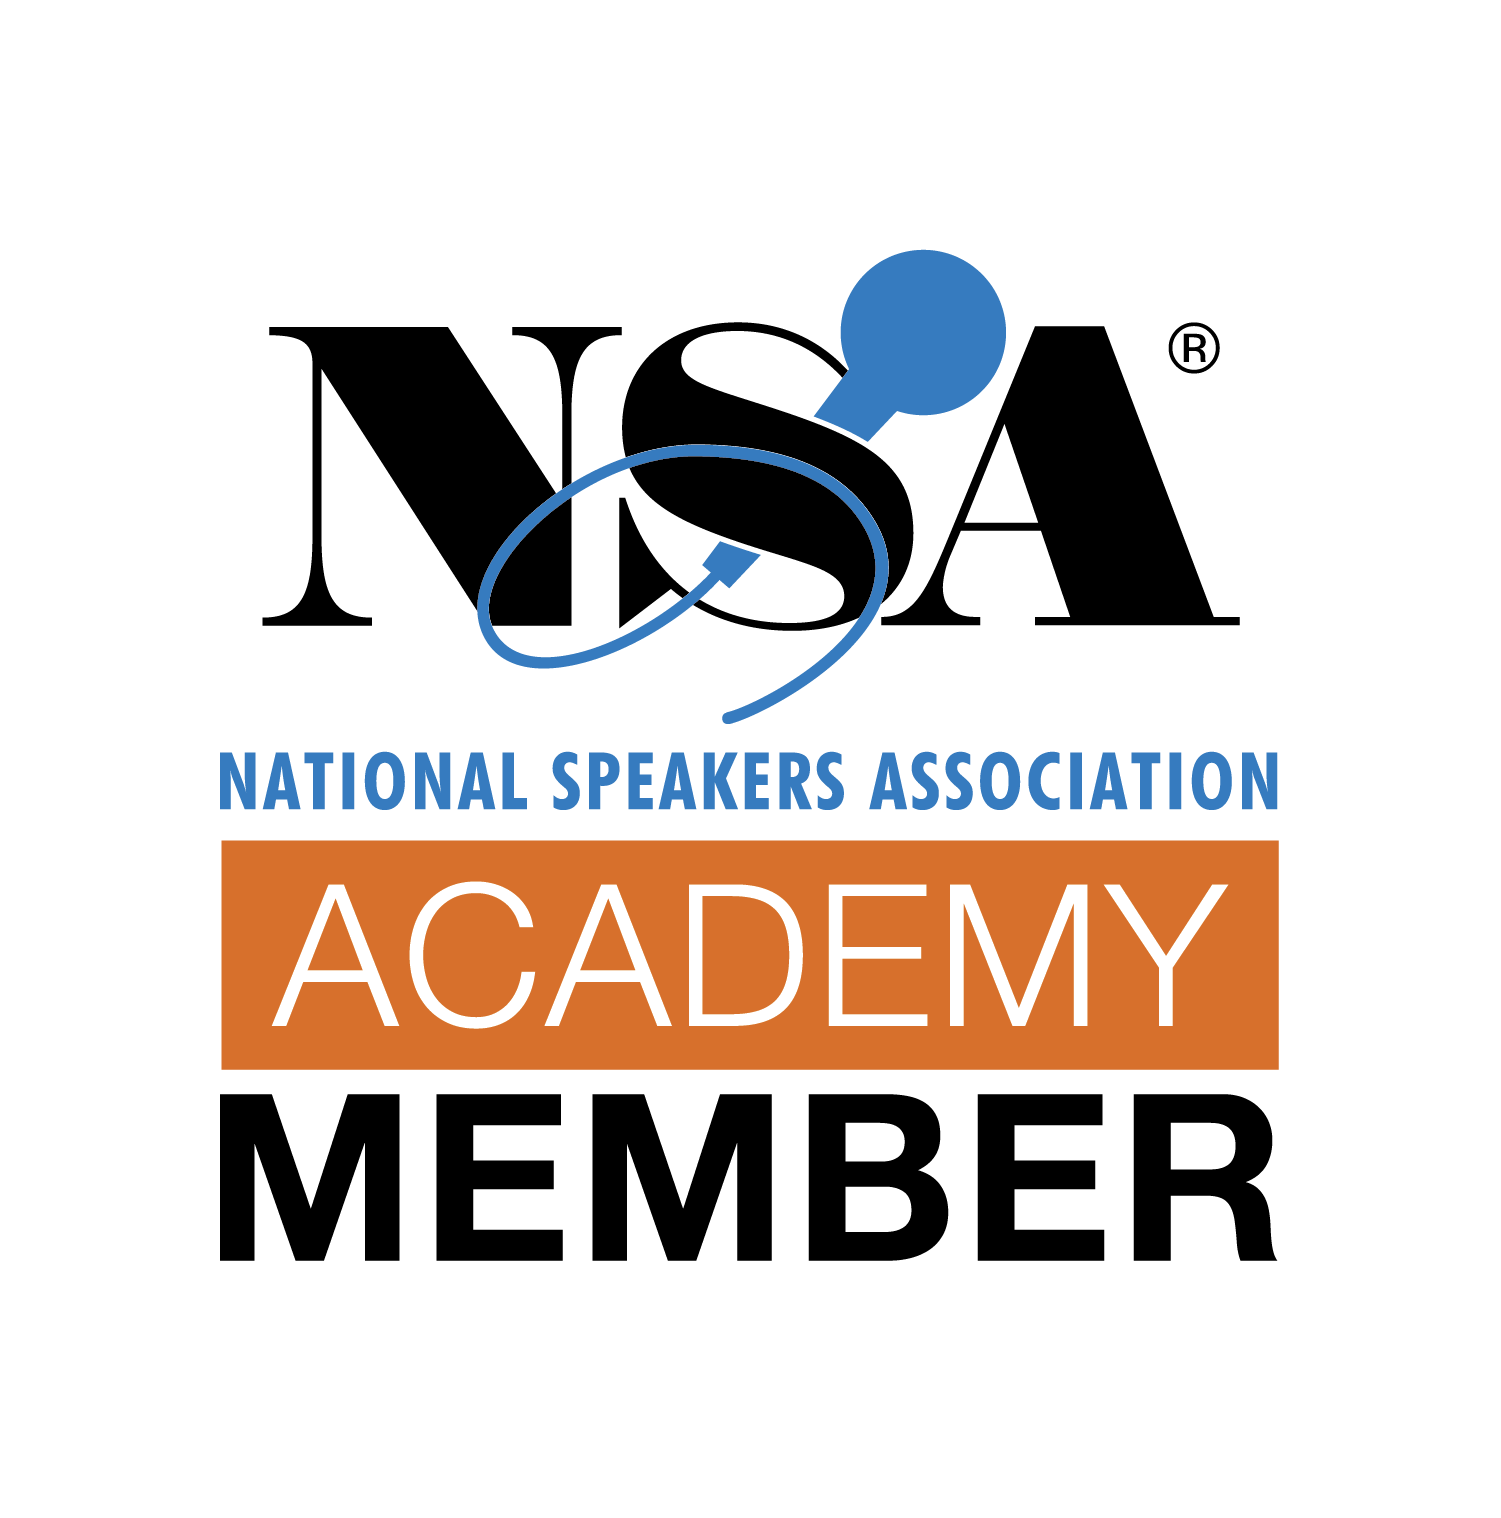 National Speaker's Association